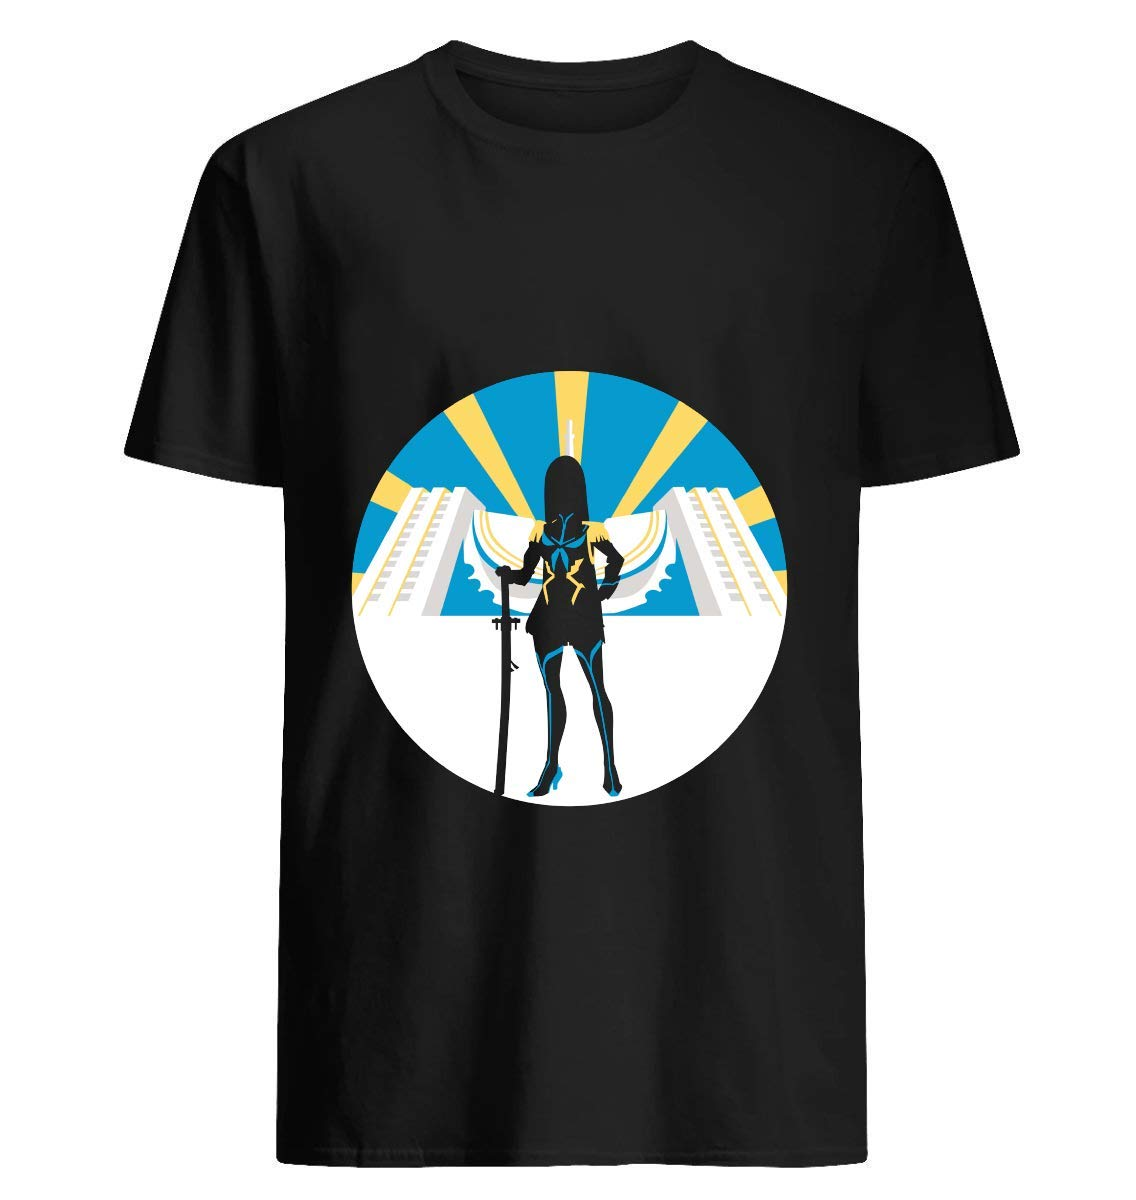 Don T Lose Your Way 2 56 T Shirt For Unisex